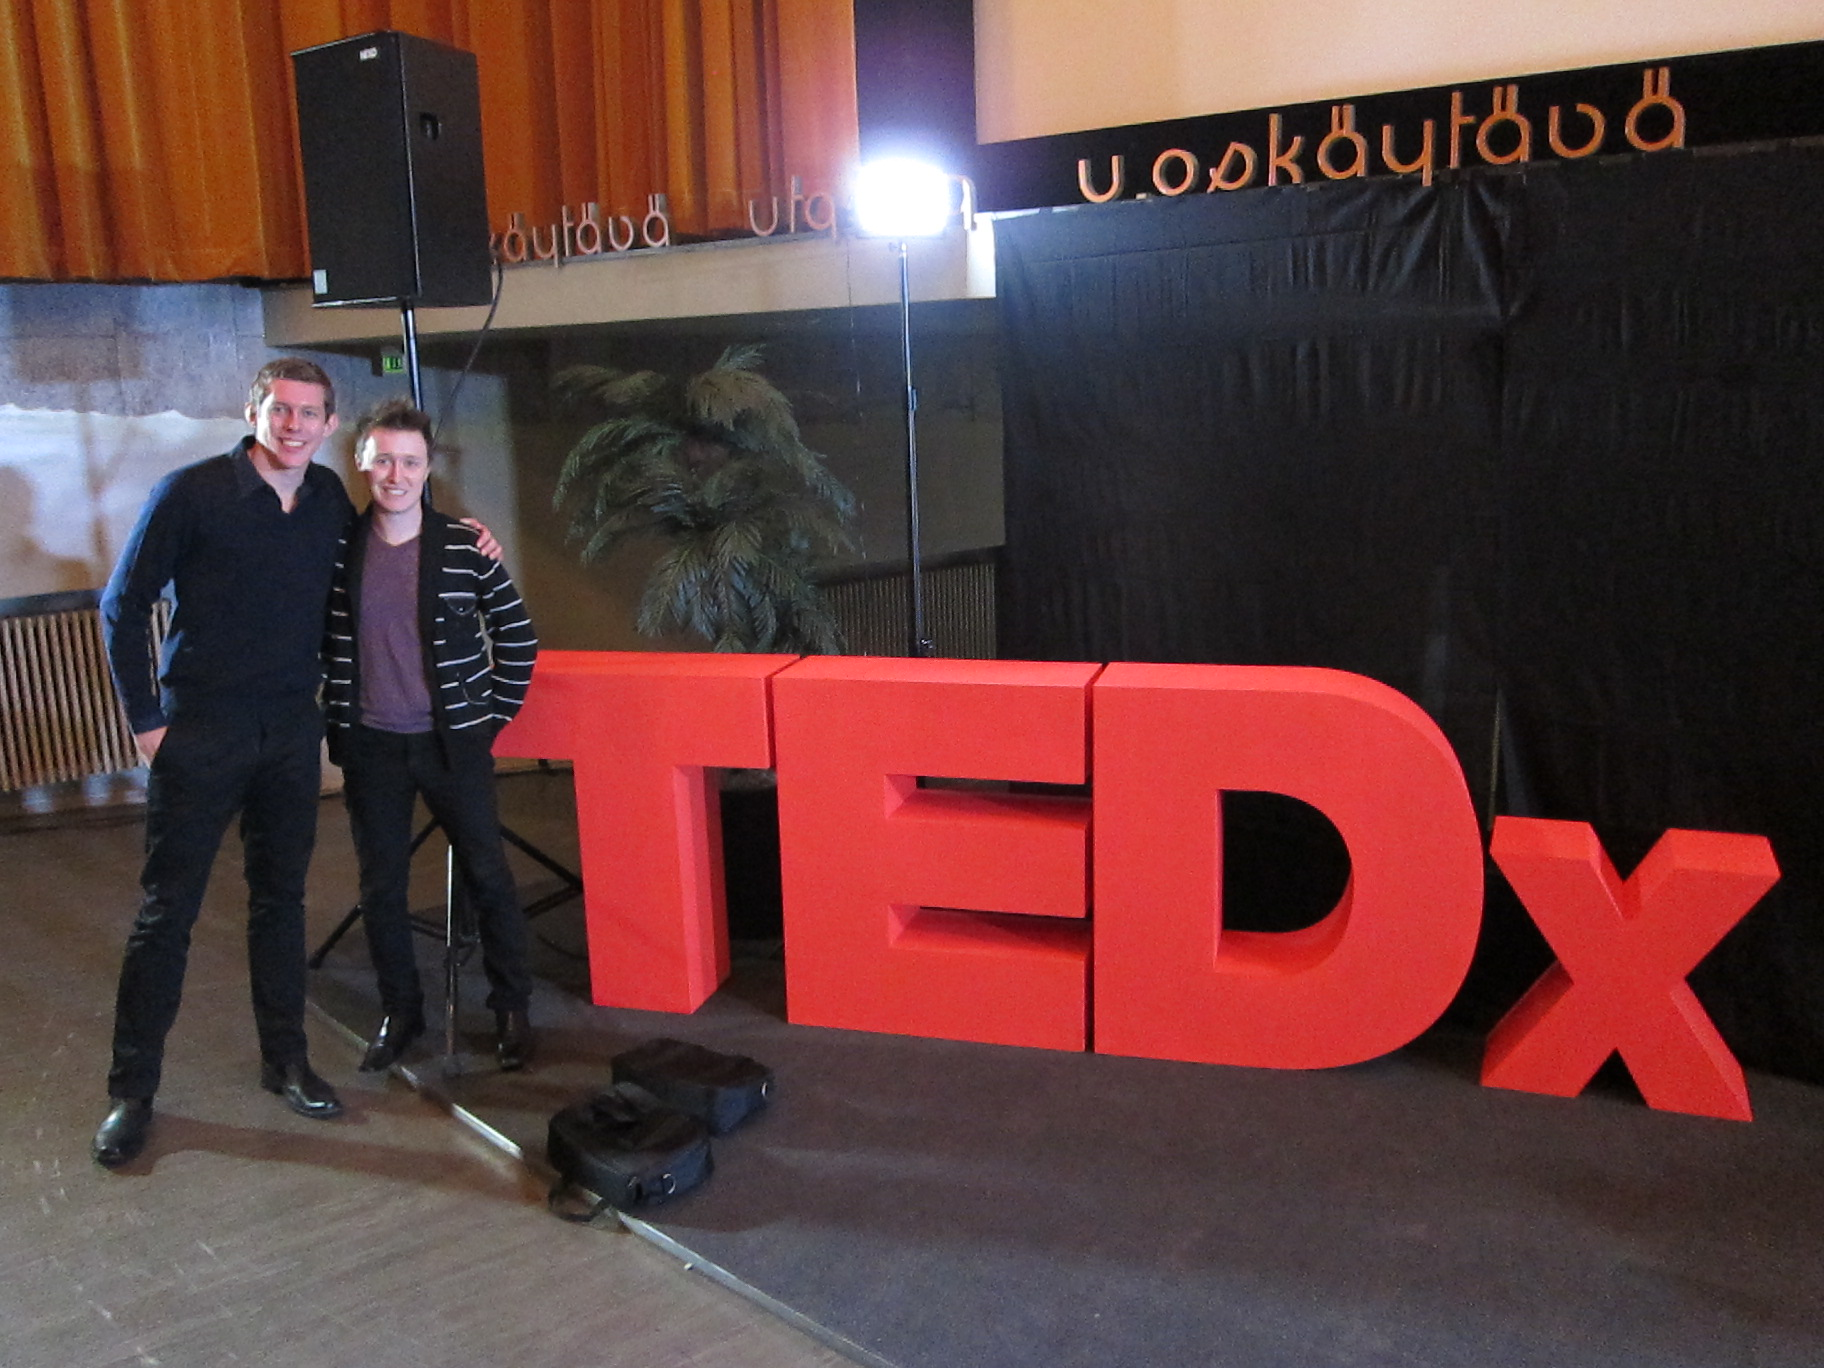 Getting ready to speak and perform at the TEDx in Helsinki